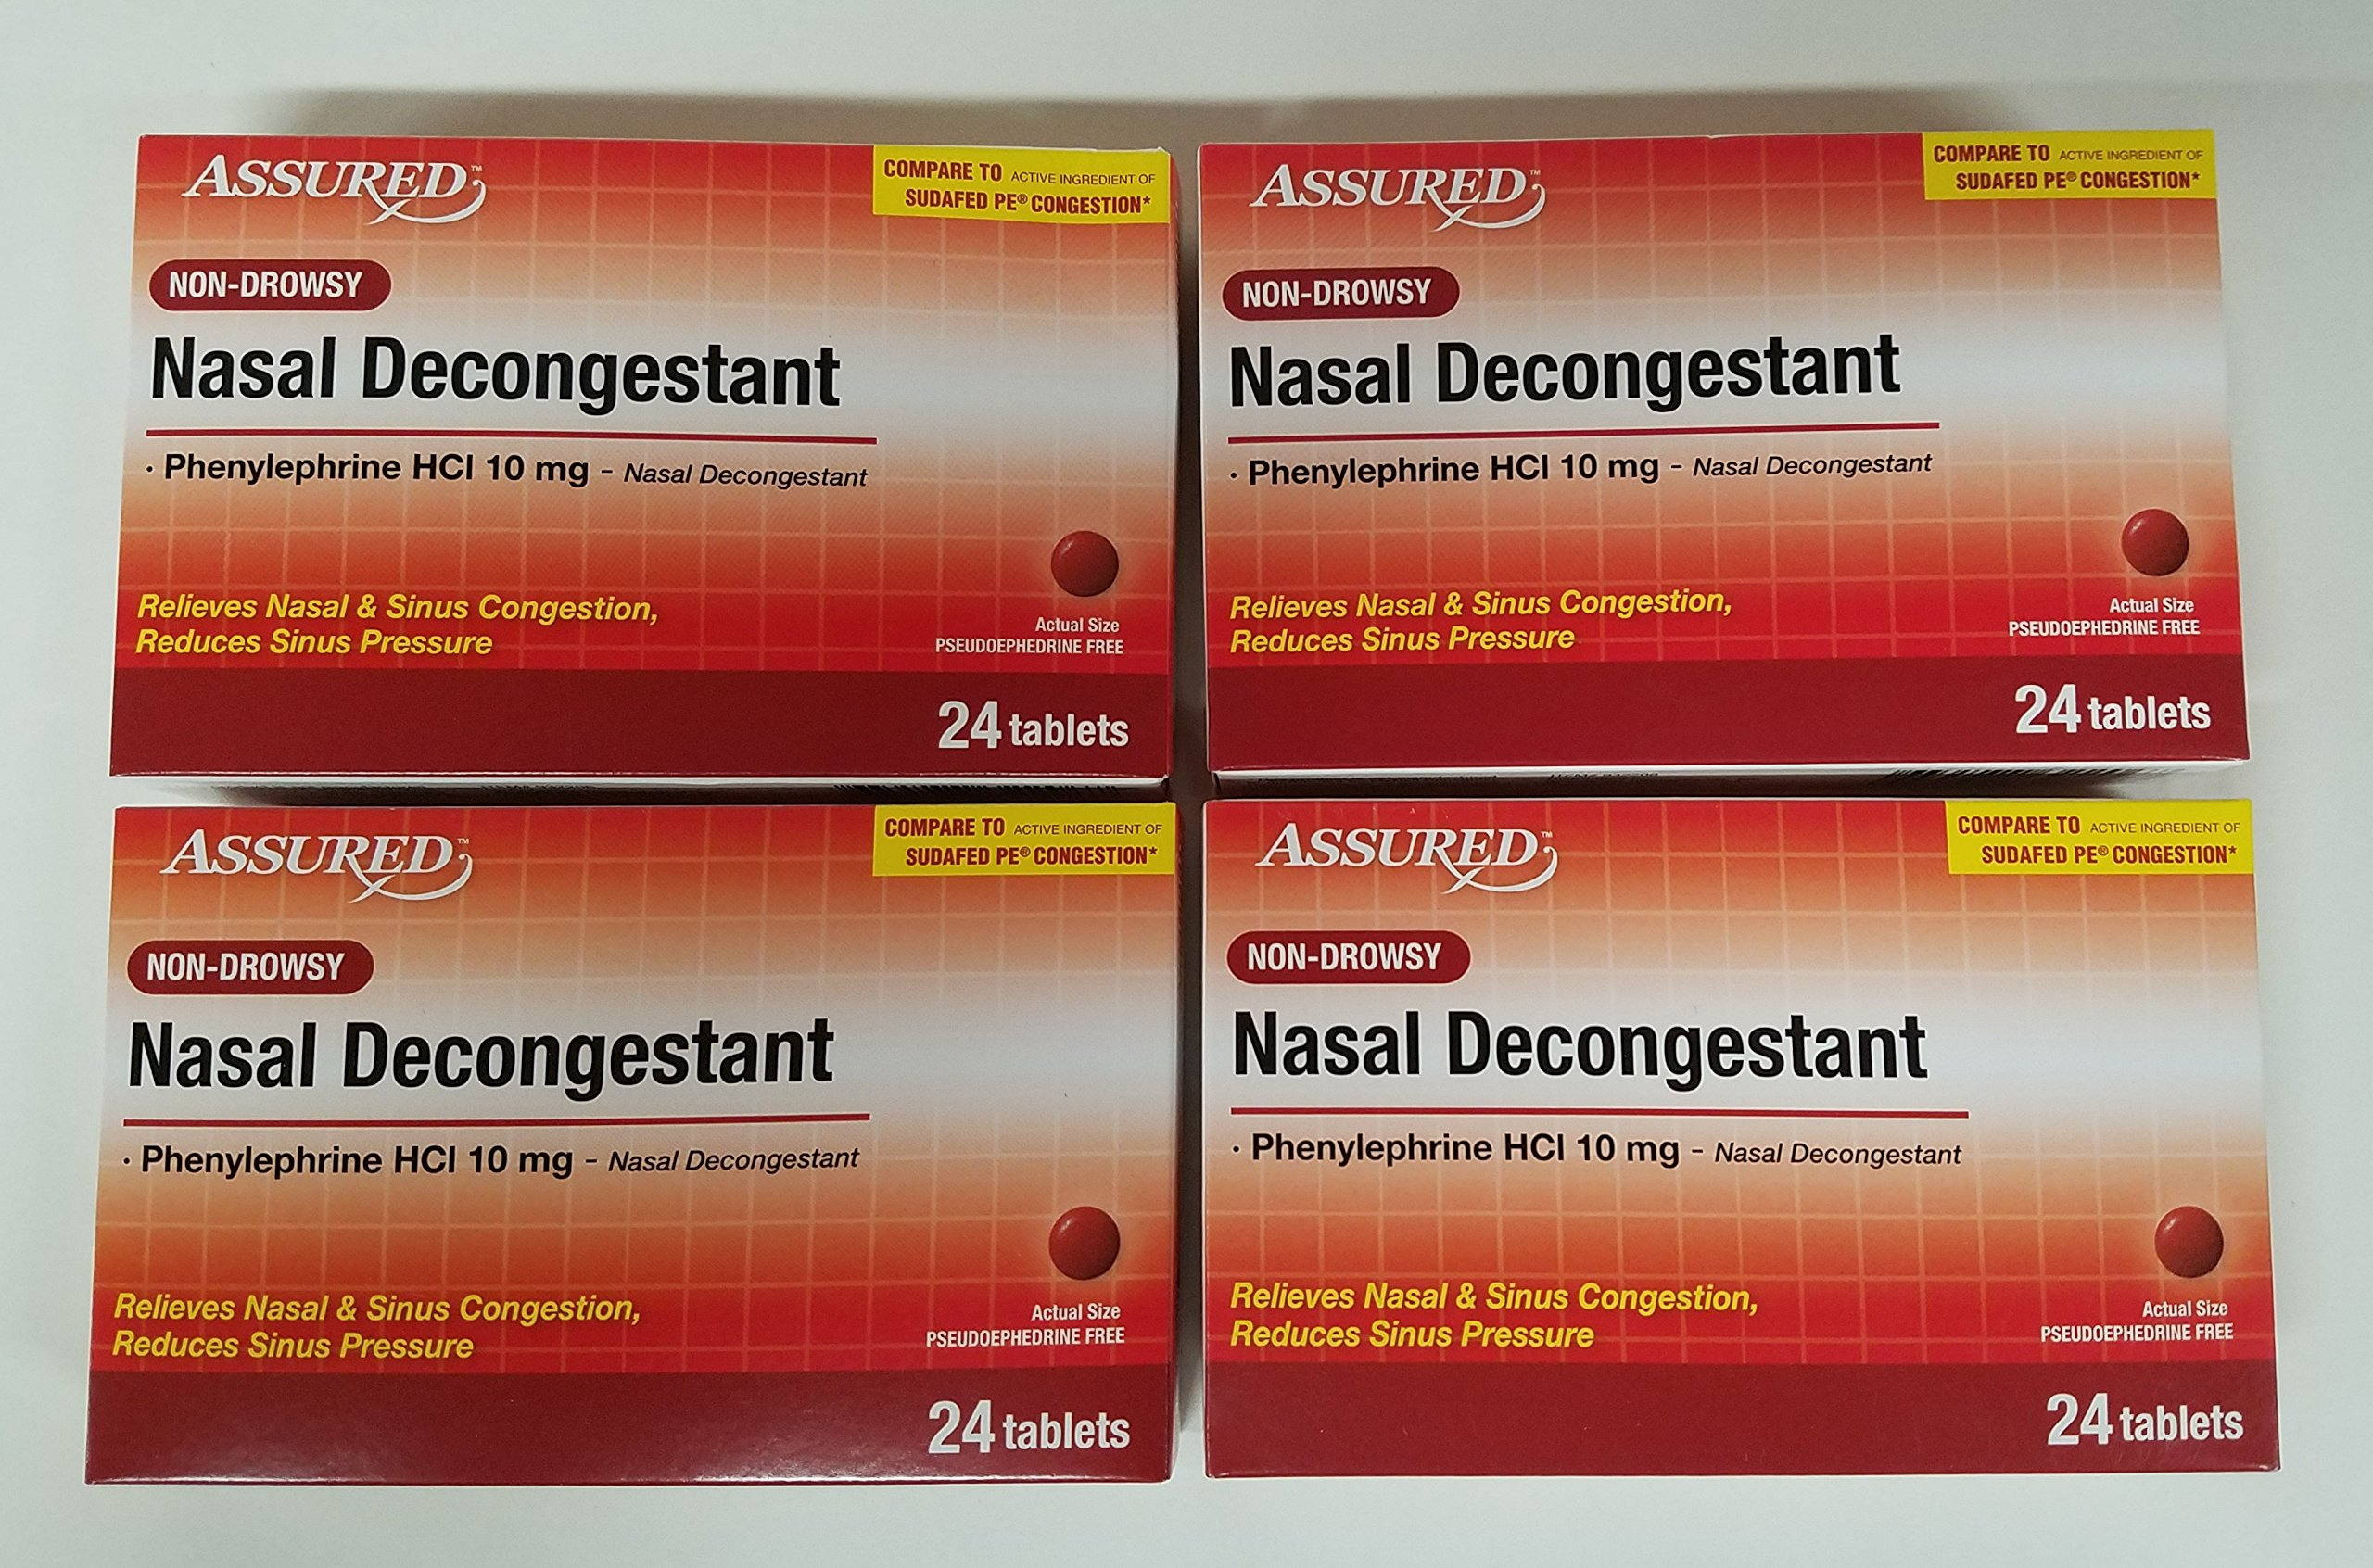 Assured Non Drowsy Nasal Decongestant, 96 Tablets